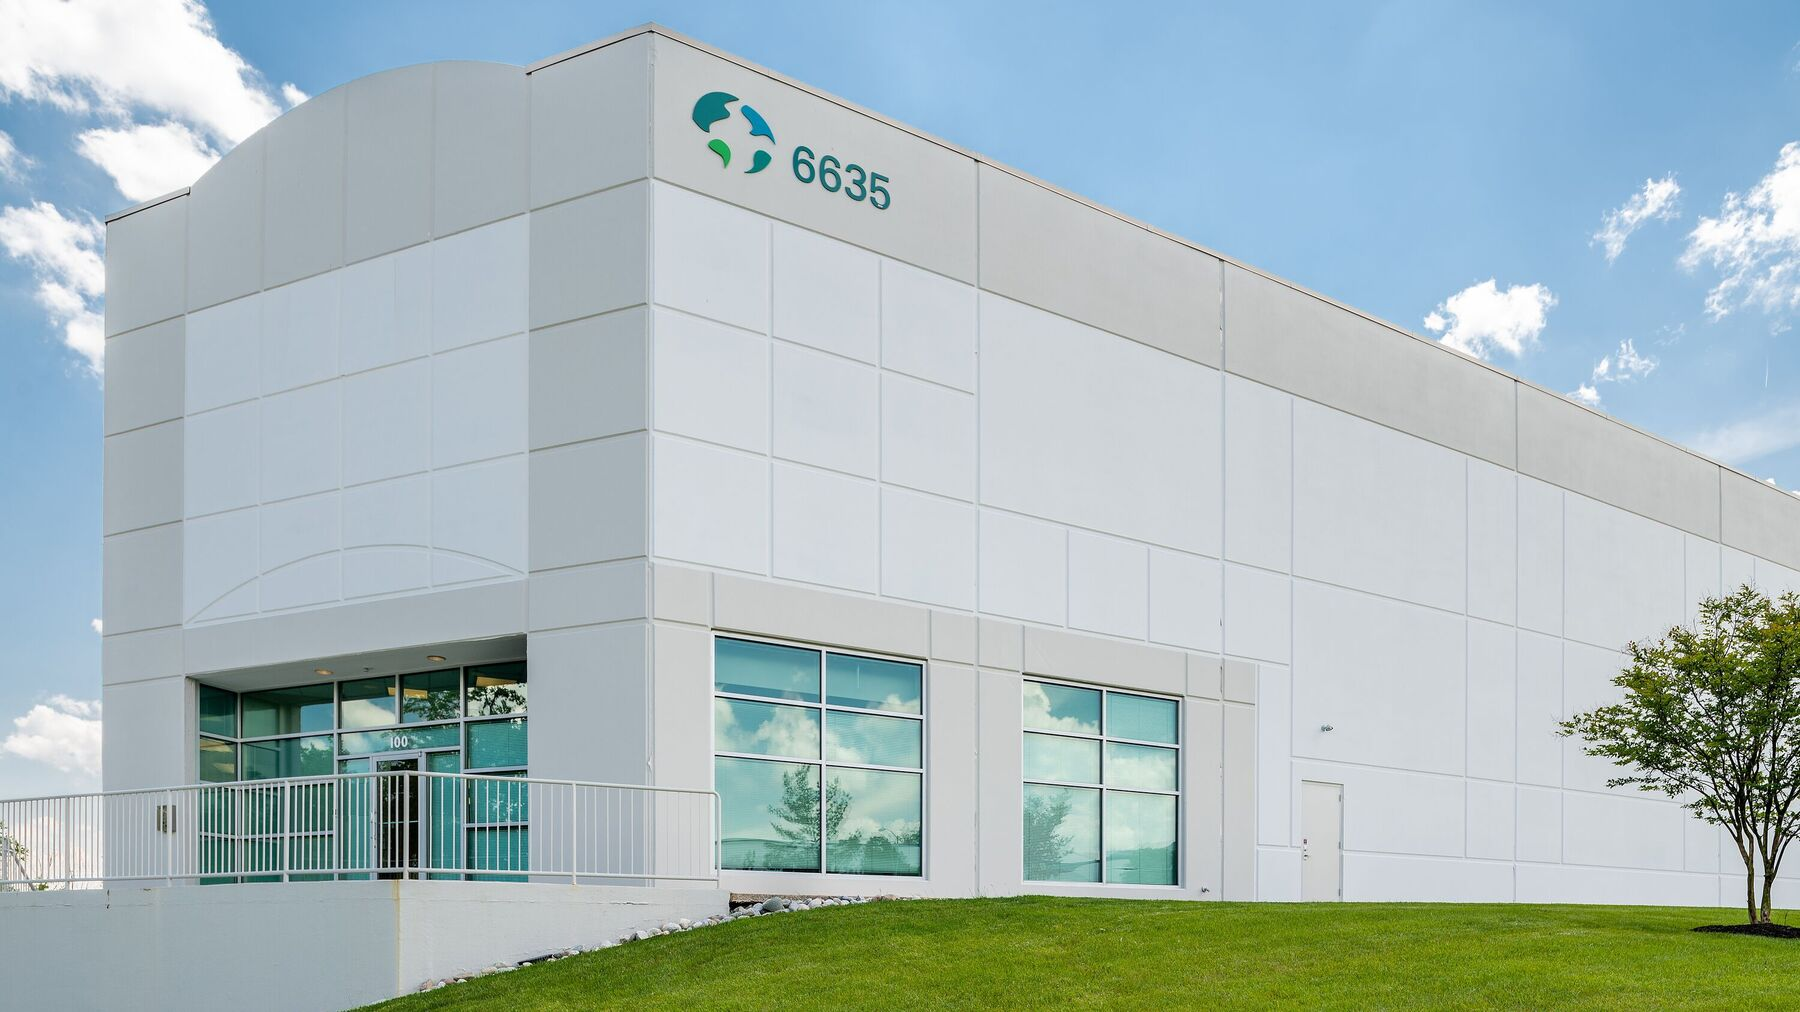 DPM-Prologis-Meadowridge-1-Logo-Removed.jpg